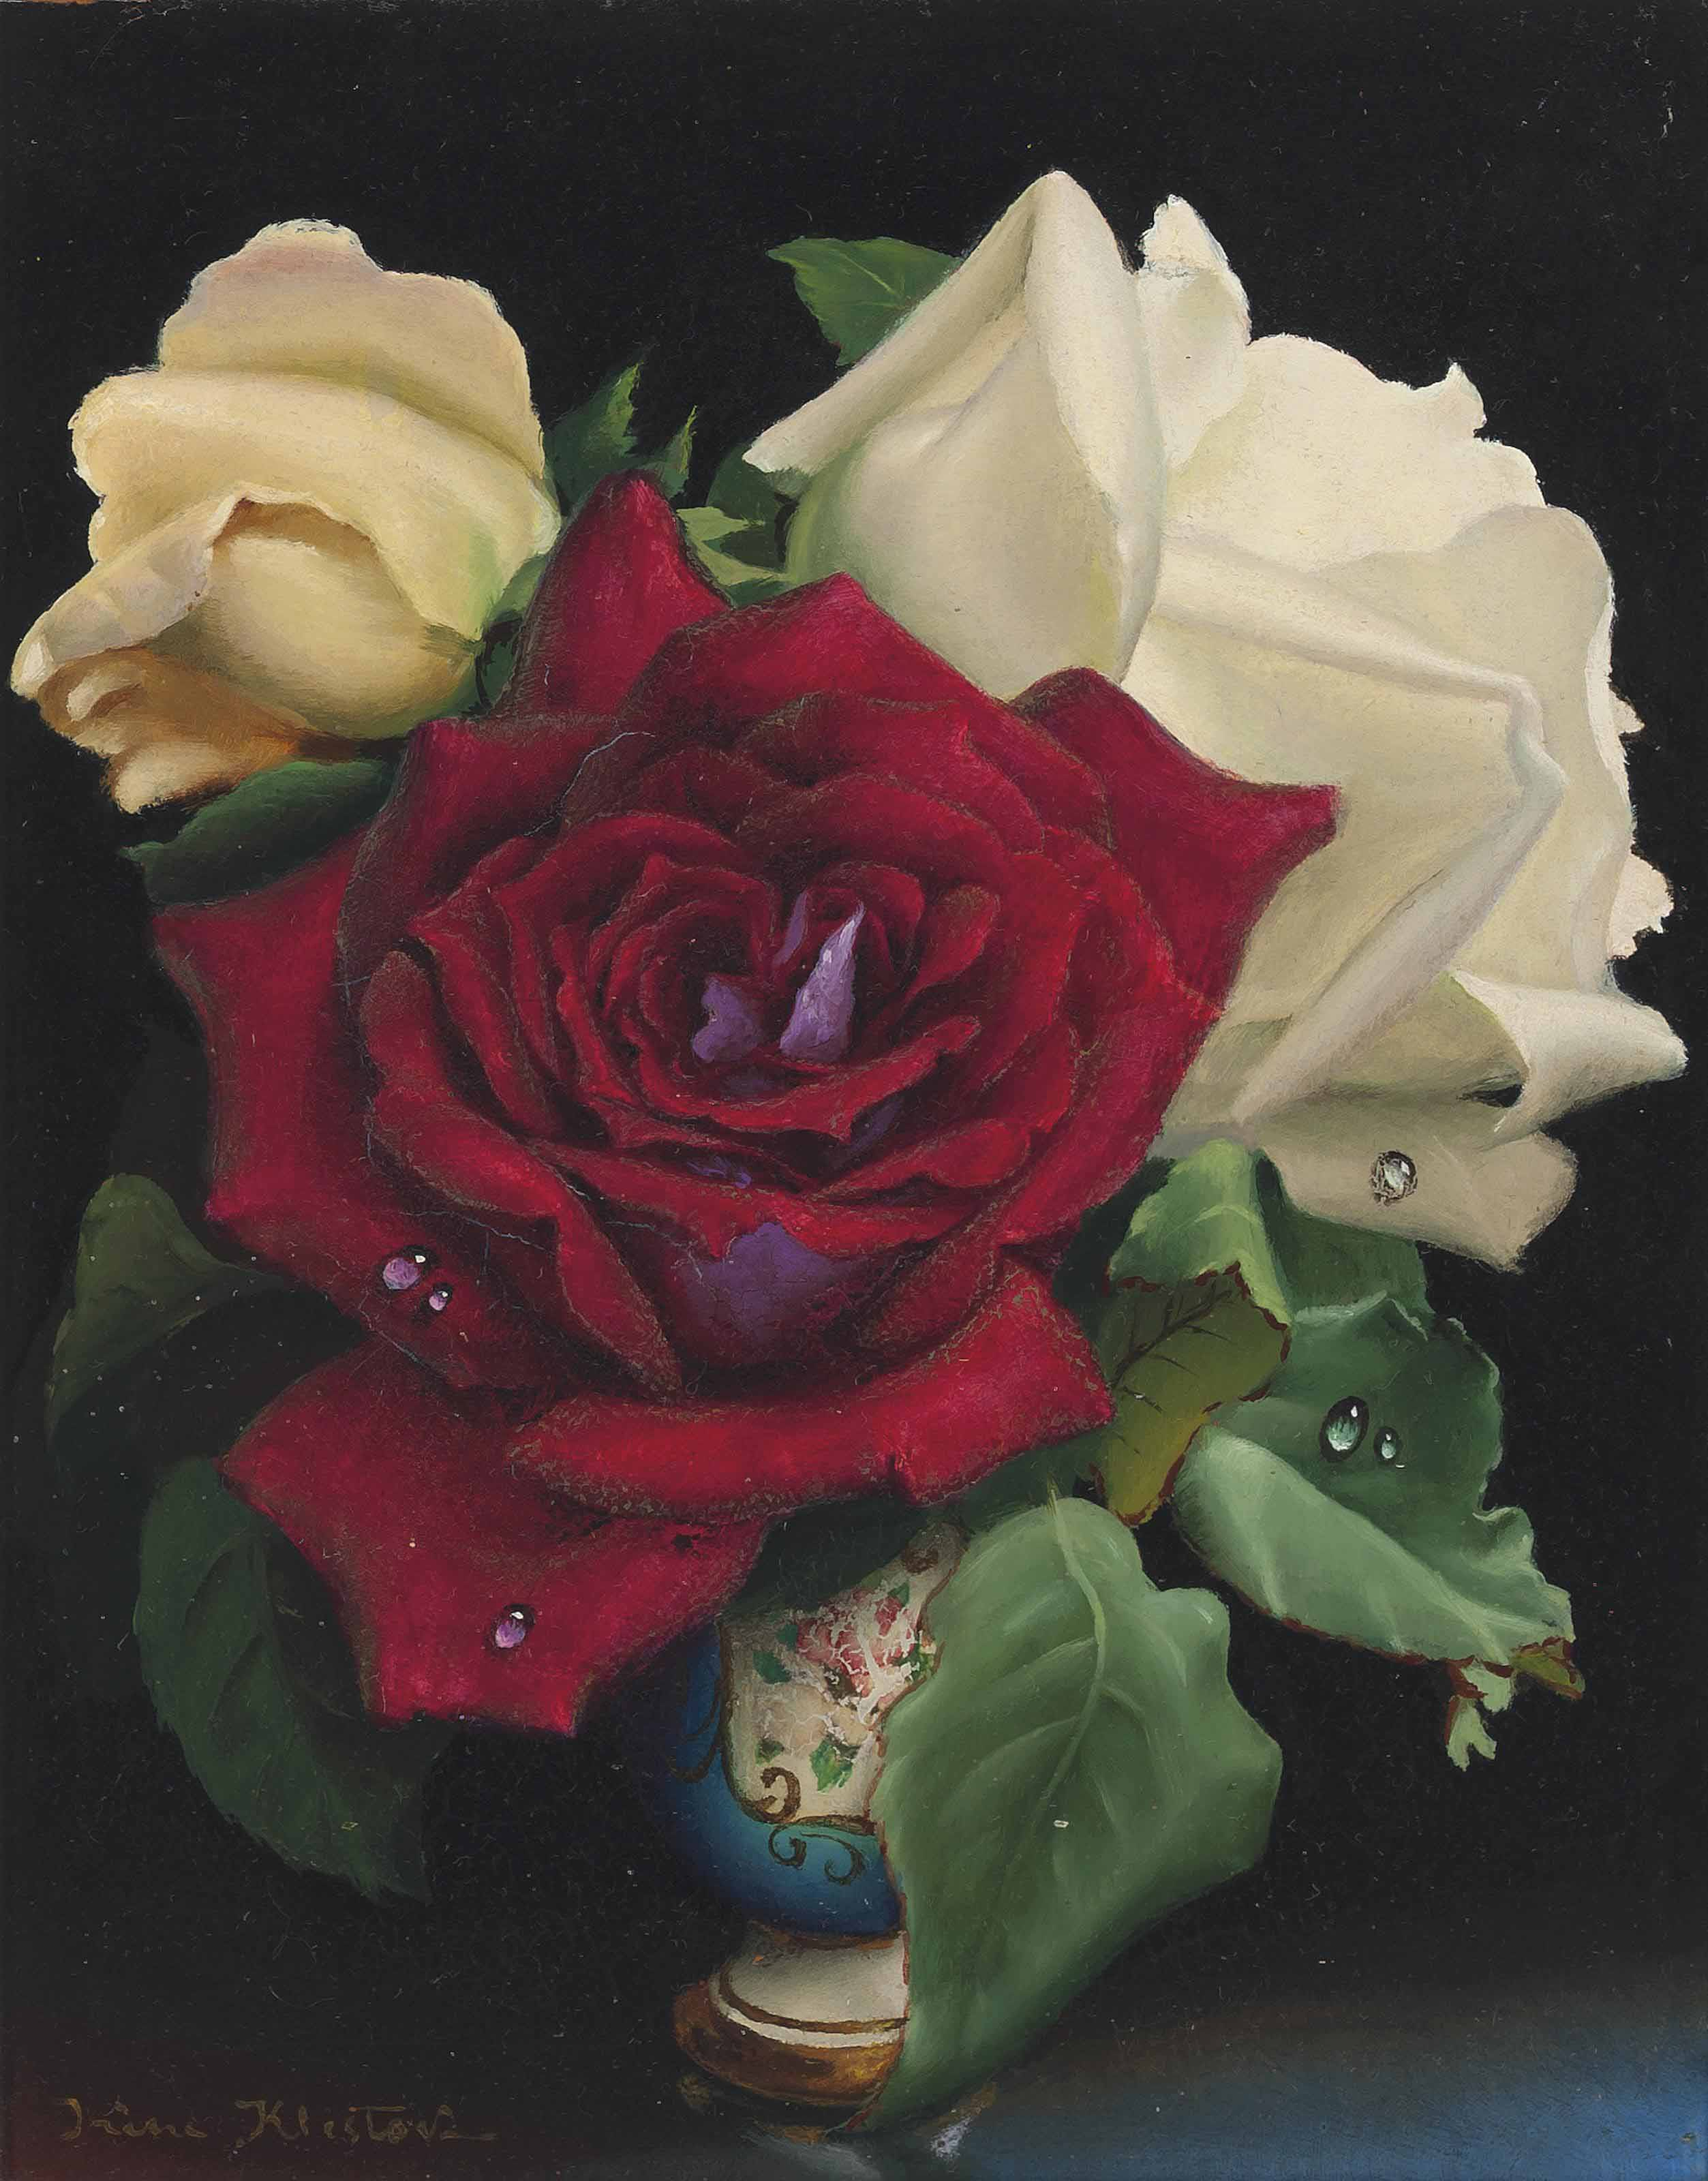 Yellow, white and red roses in a meissen blue vase; and Pink, white and red roses in a meissen blue vase